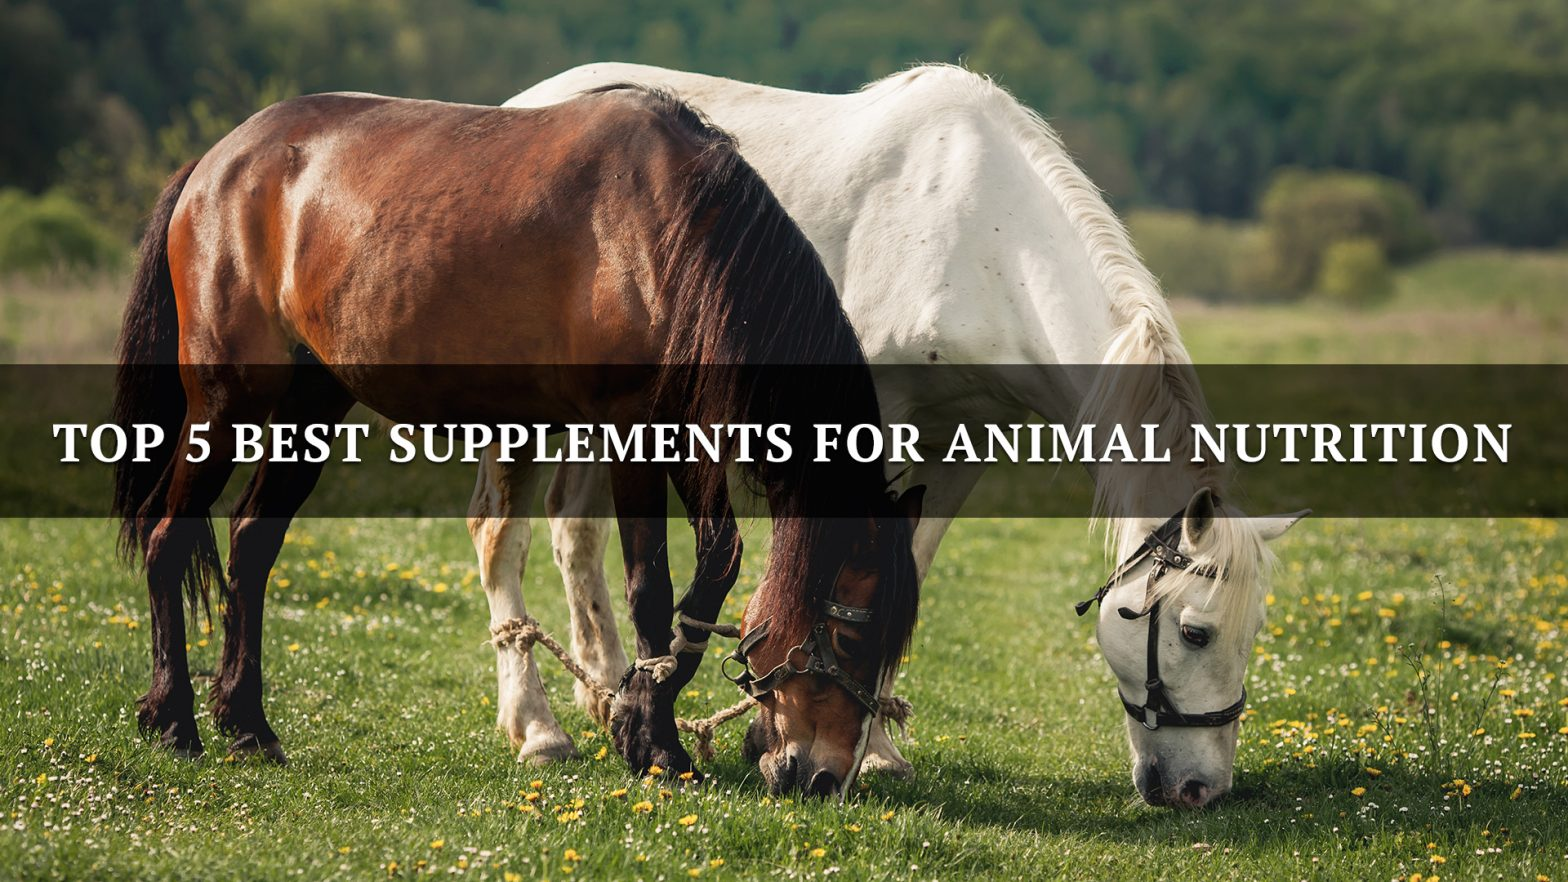 Top 5 Best Supplements for Animal Nutrition